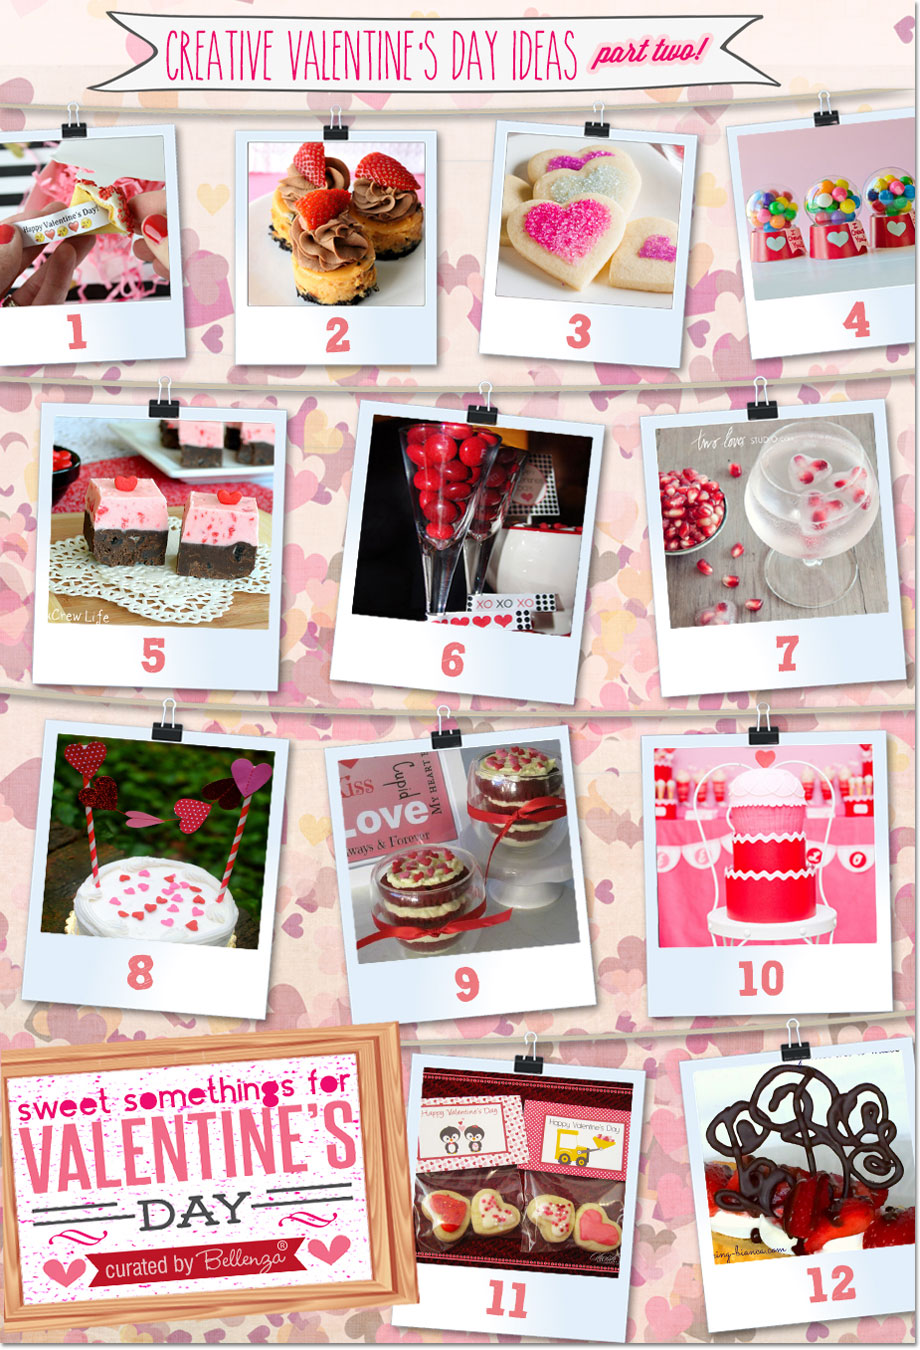 A special post from Bellenza featuring 24 Creative Valentine's Sweets and Favors.